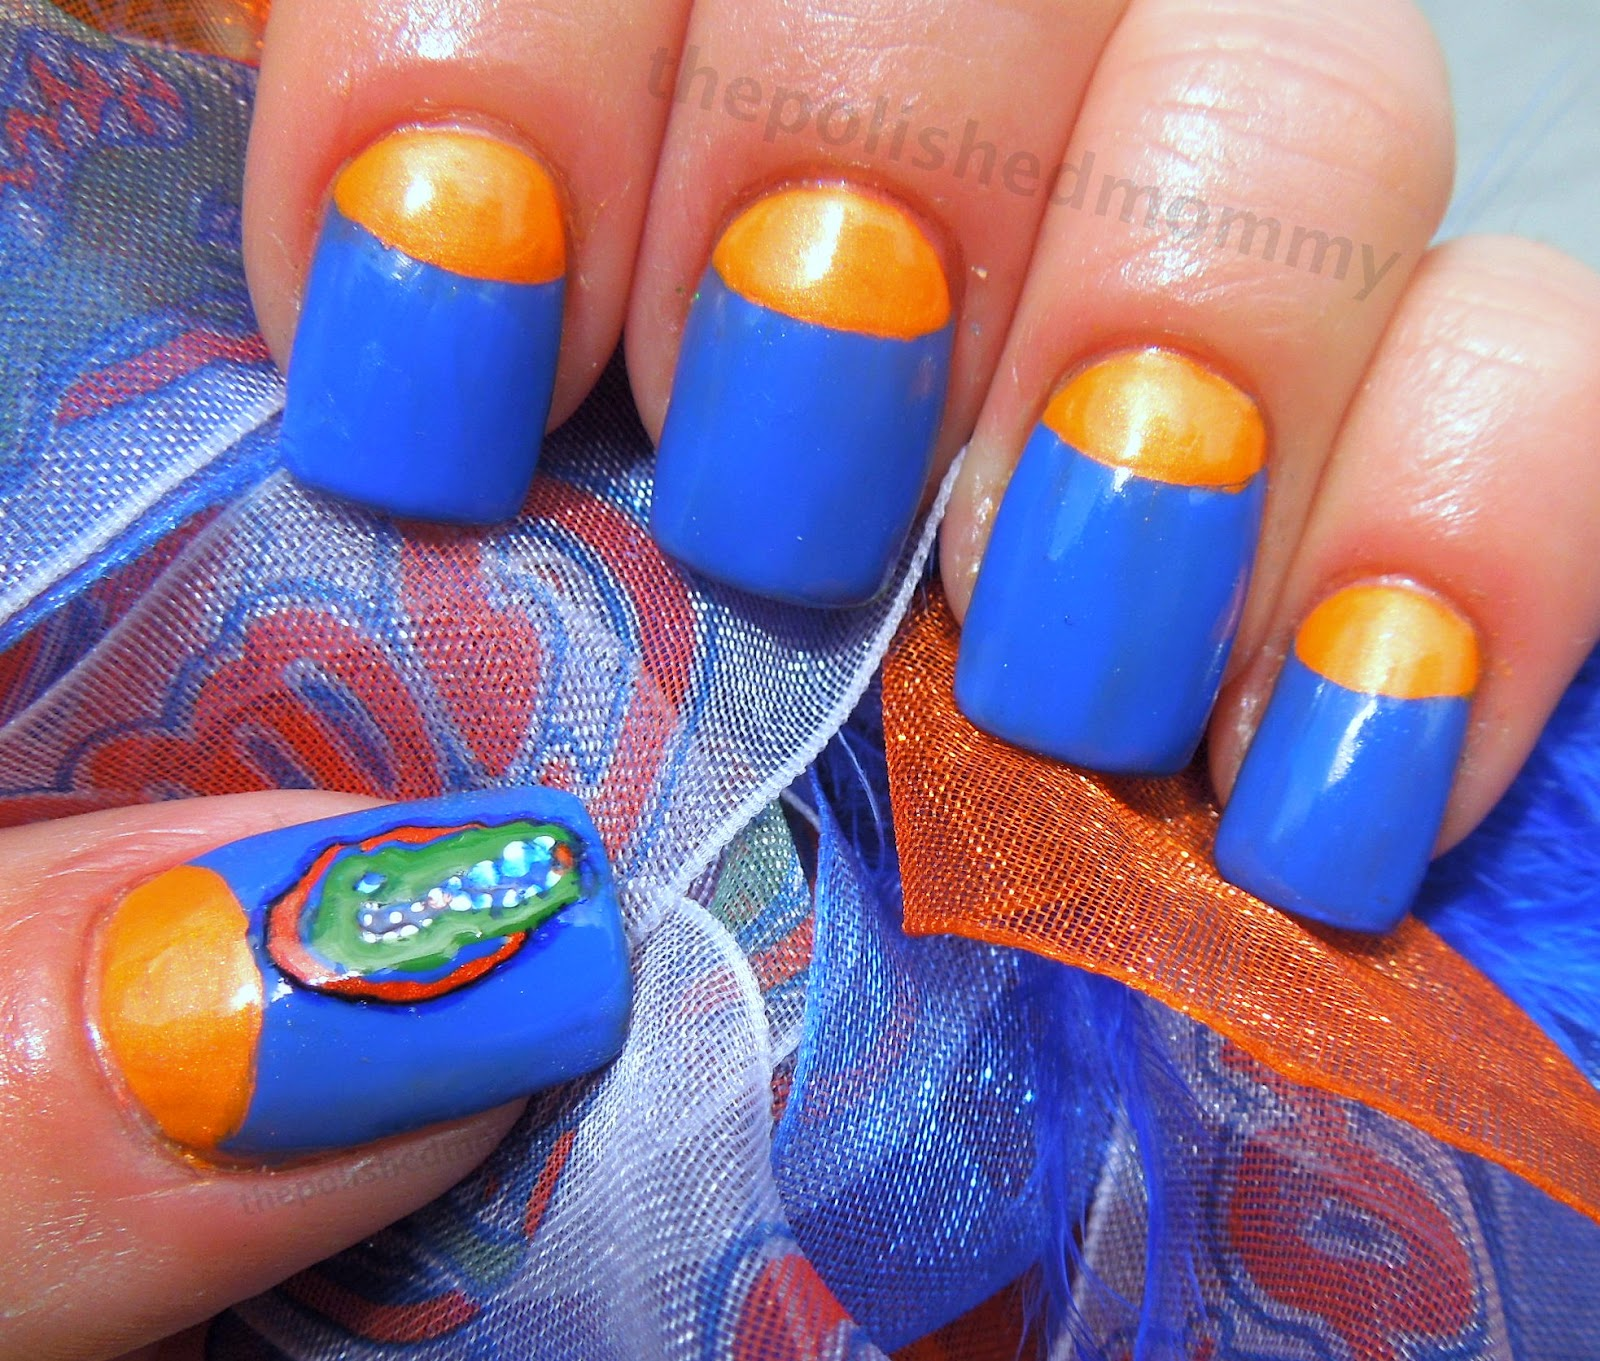 I China Glaze Orange Knockout And You Hot Then Nails Inc Baker Street The Gator Was Custom Mixed To Create Perfect Colors